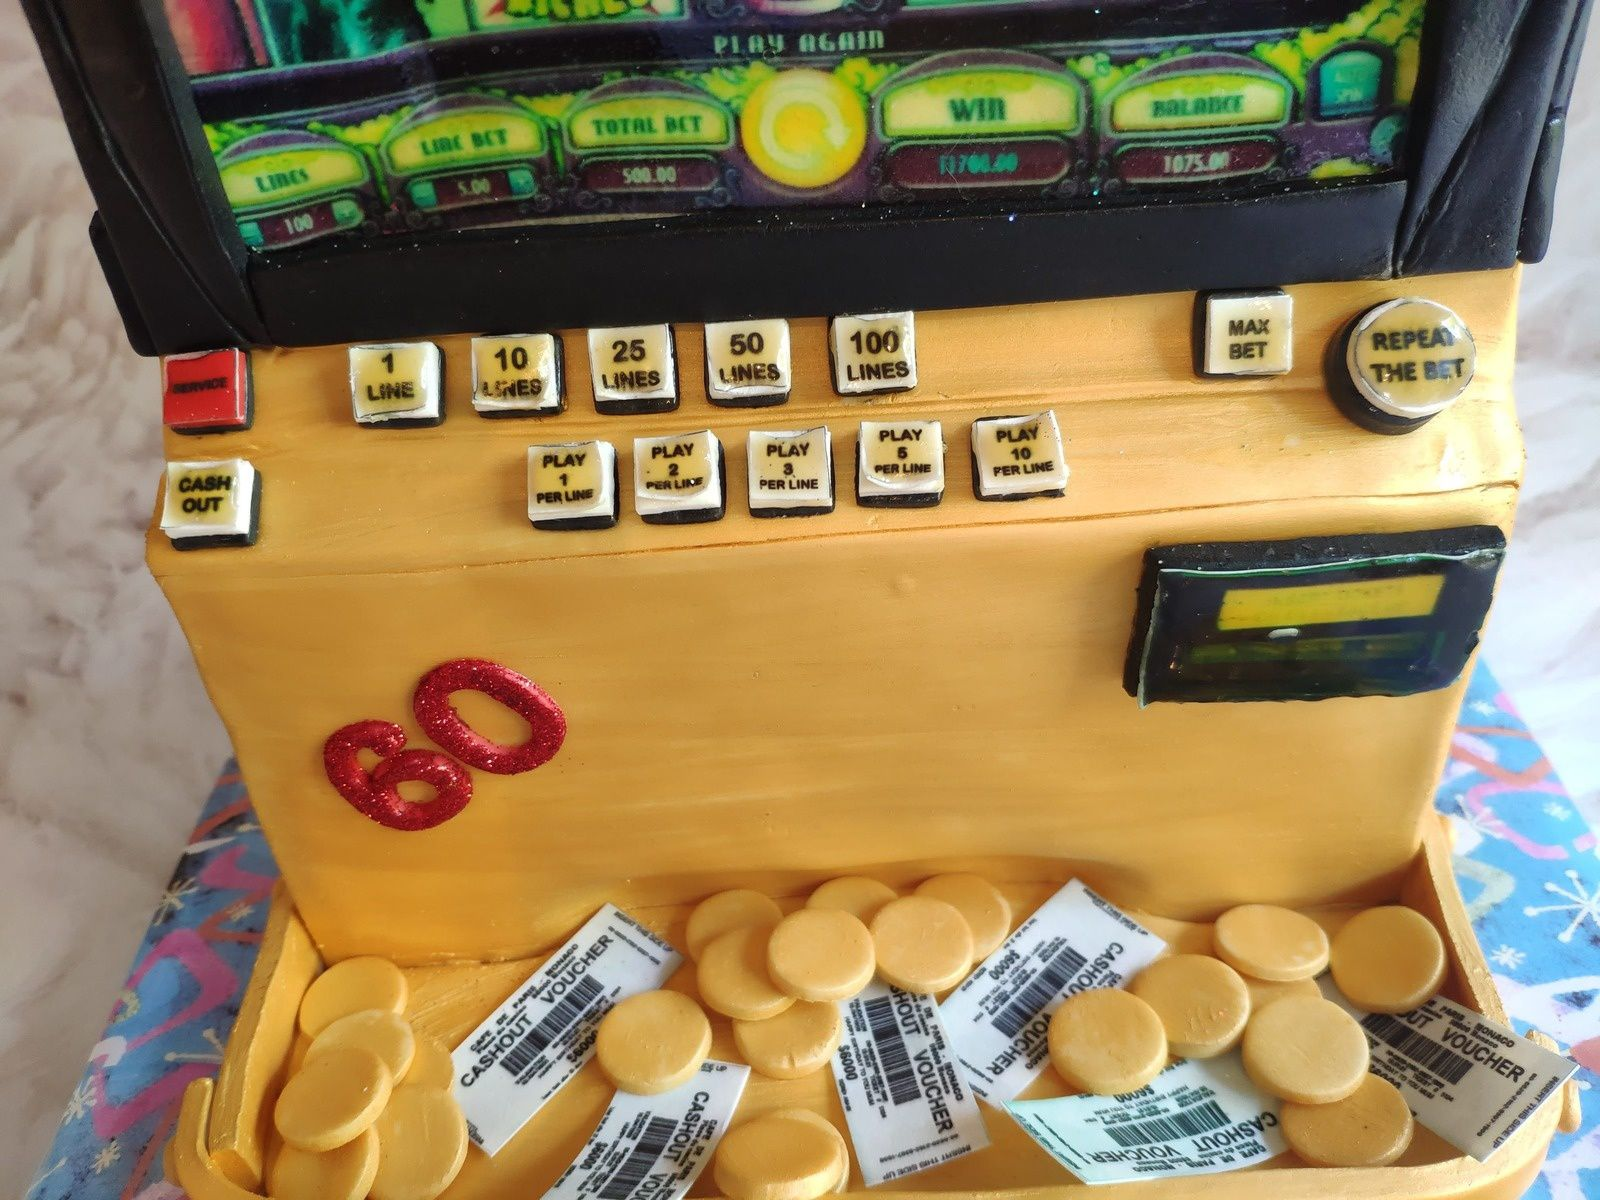 GATEAU MACHINE A SOUS - STINKIN'RICH SLOT MACHINE CAKE